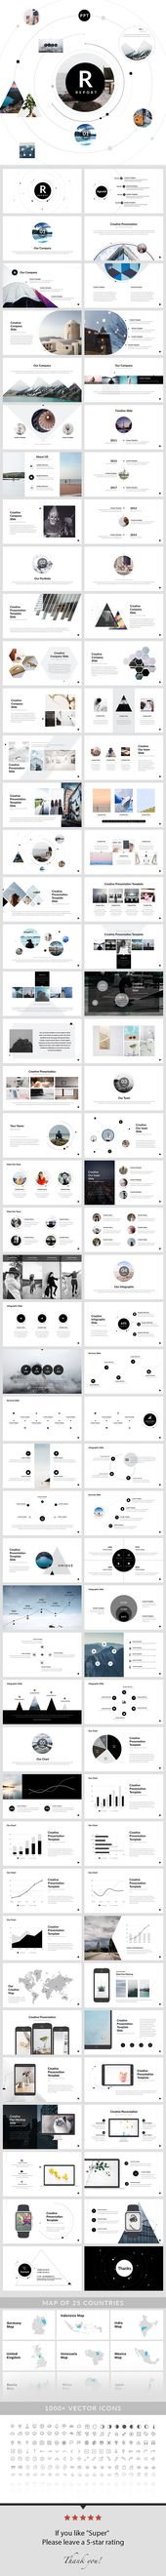 Vision Project Presentation Template #powerpoint - project presentation